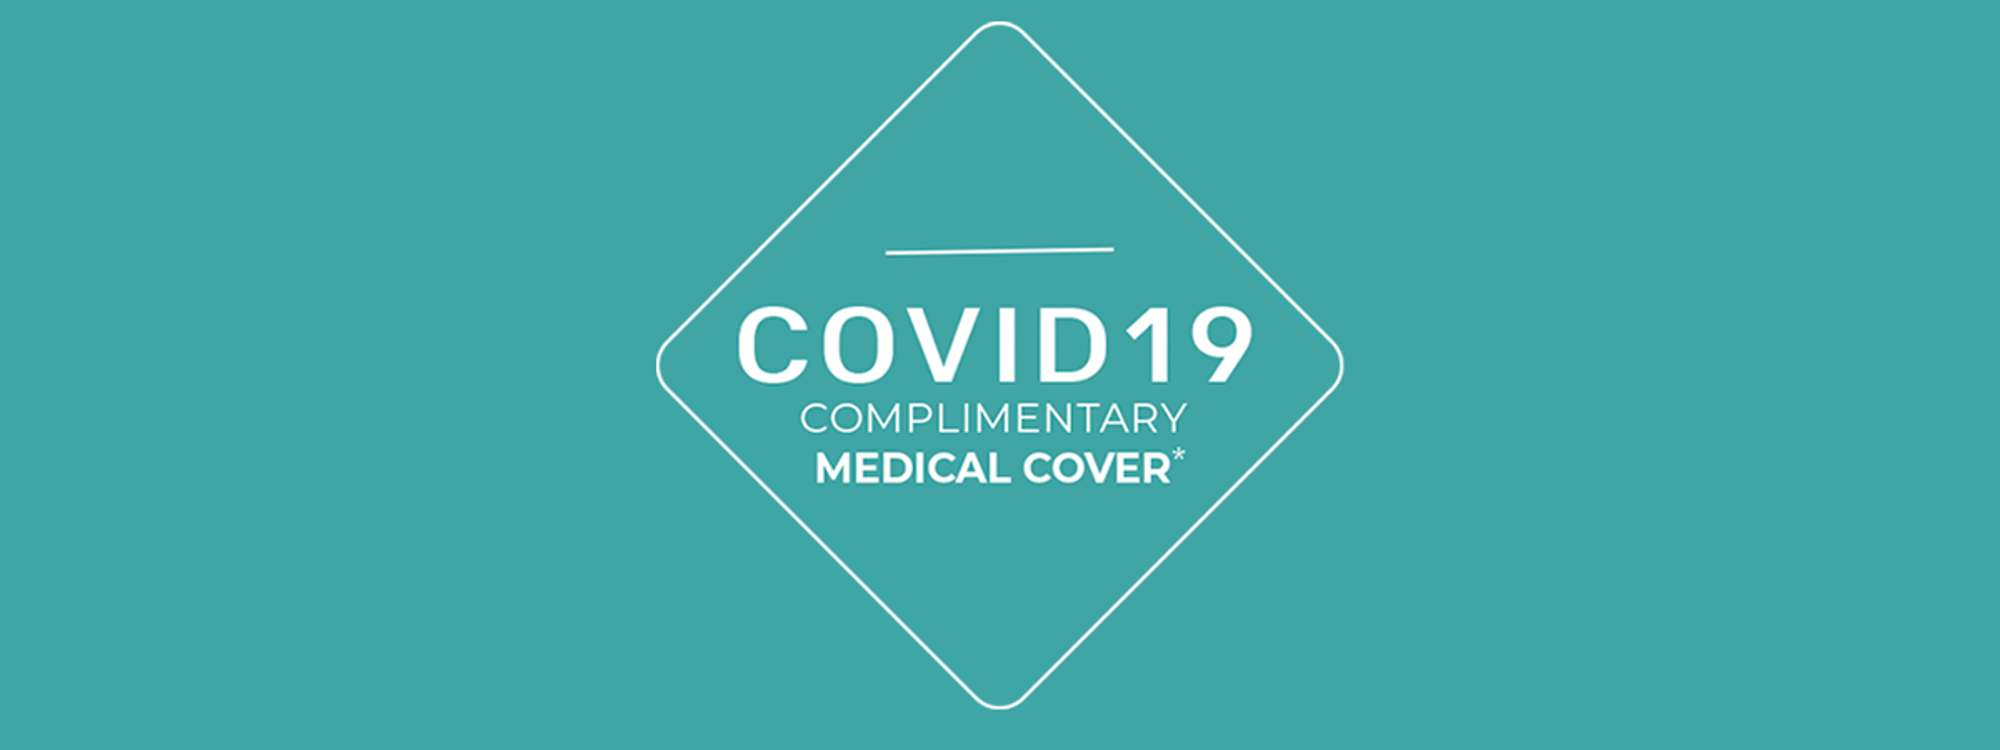 Covid-19 Medical Cover